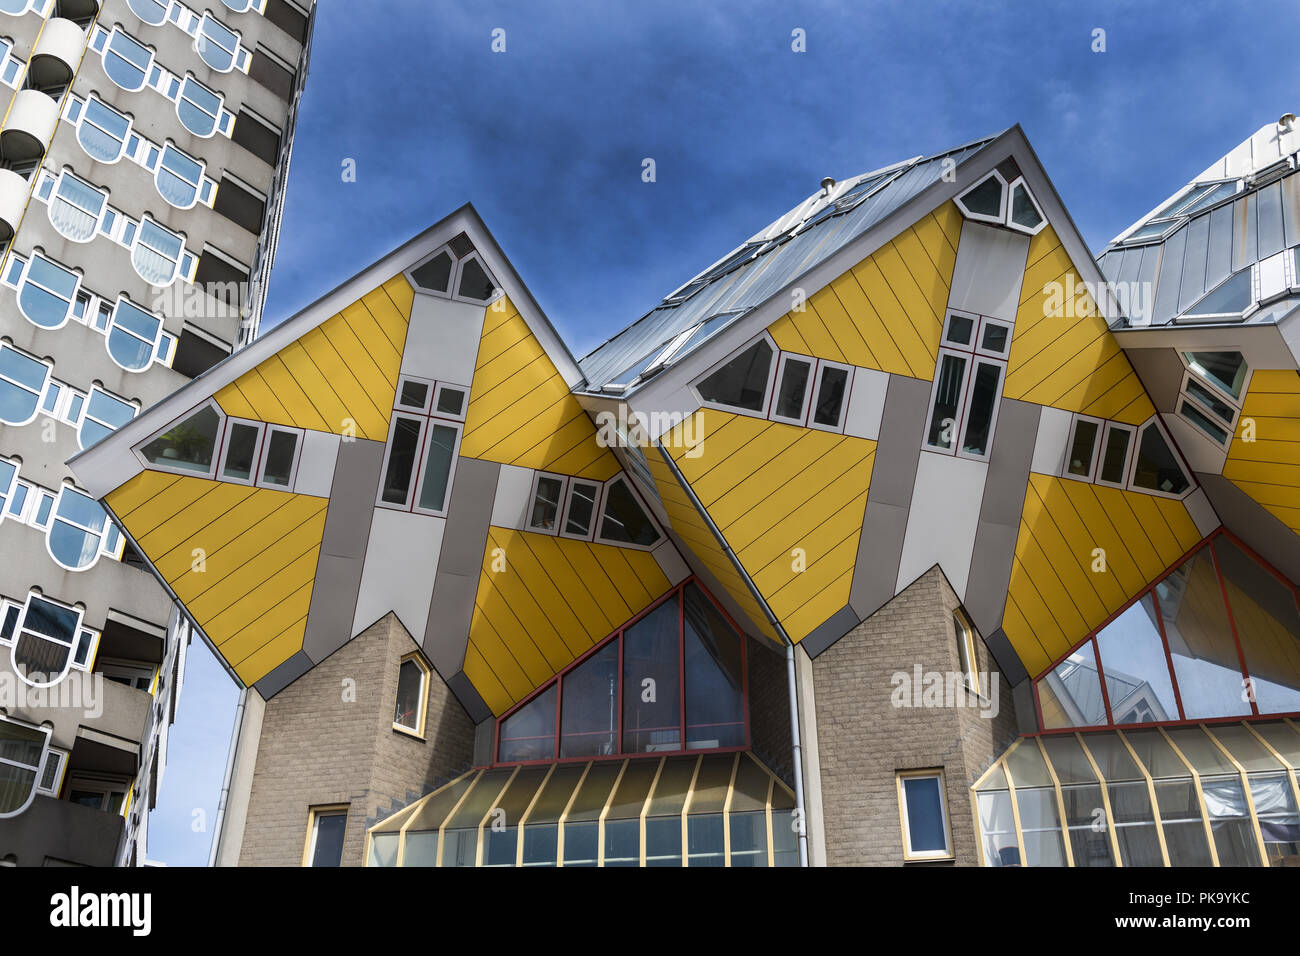 """Innovative houses built in Rotterdam in the Netherlands, designed by architect Piet Blom and based on the concept of """"living as an urban roof Stock Photo"""